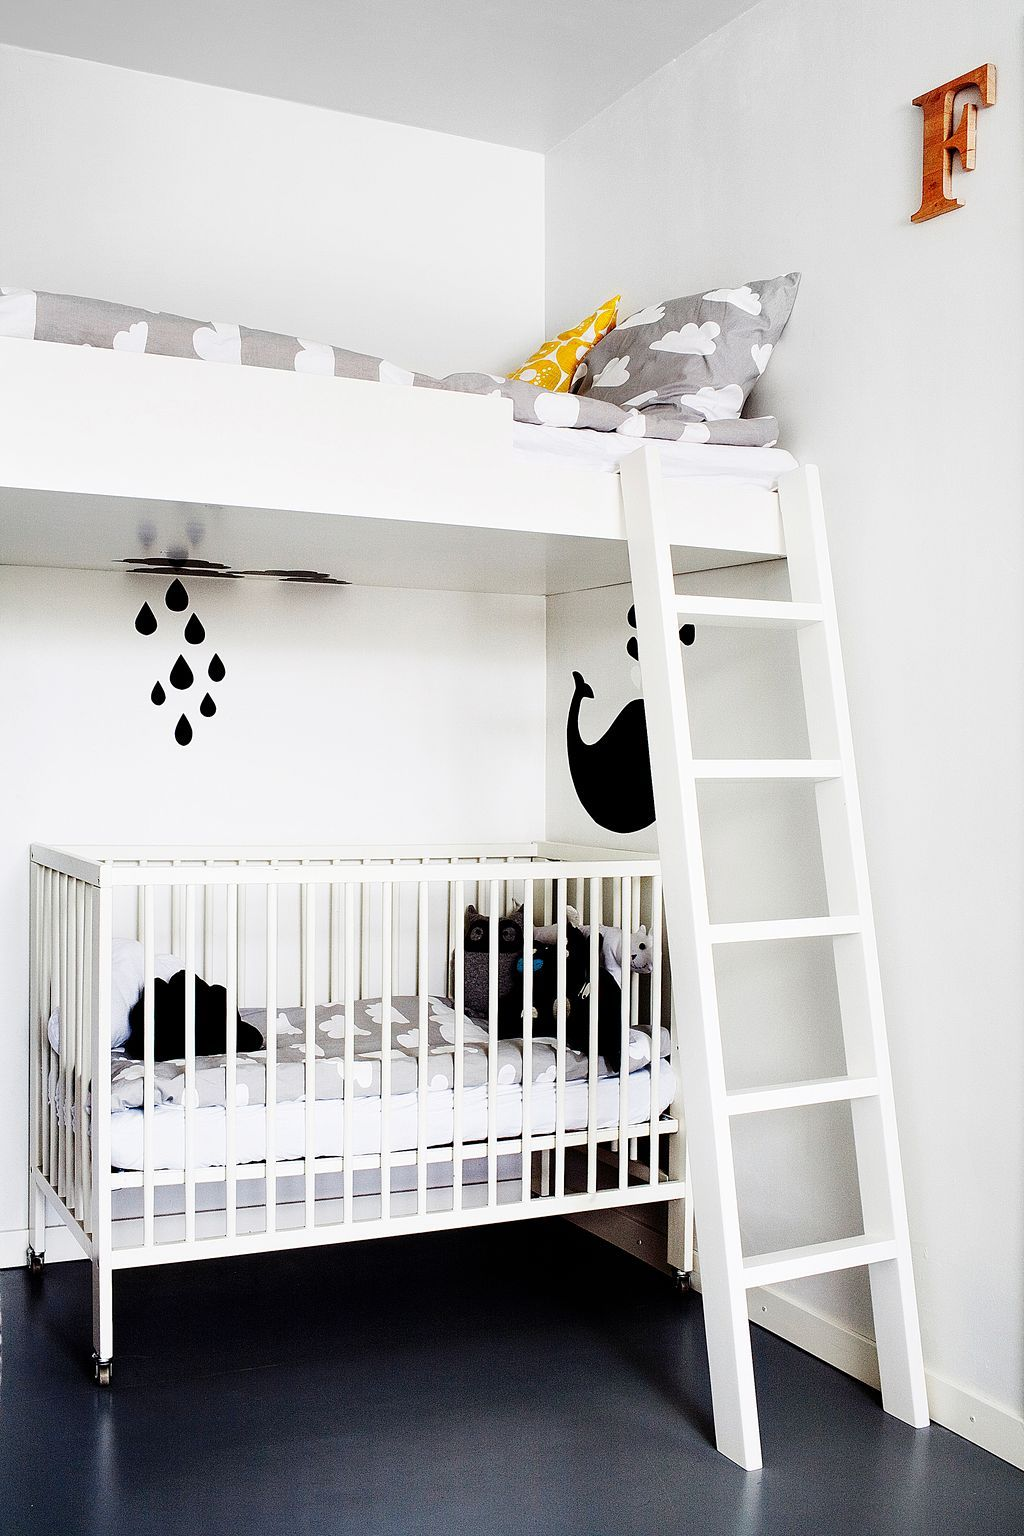 Loft Cot Cute Custom Bunks With Images Shared Kids Room